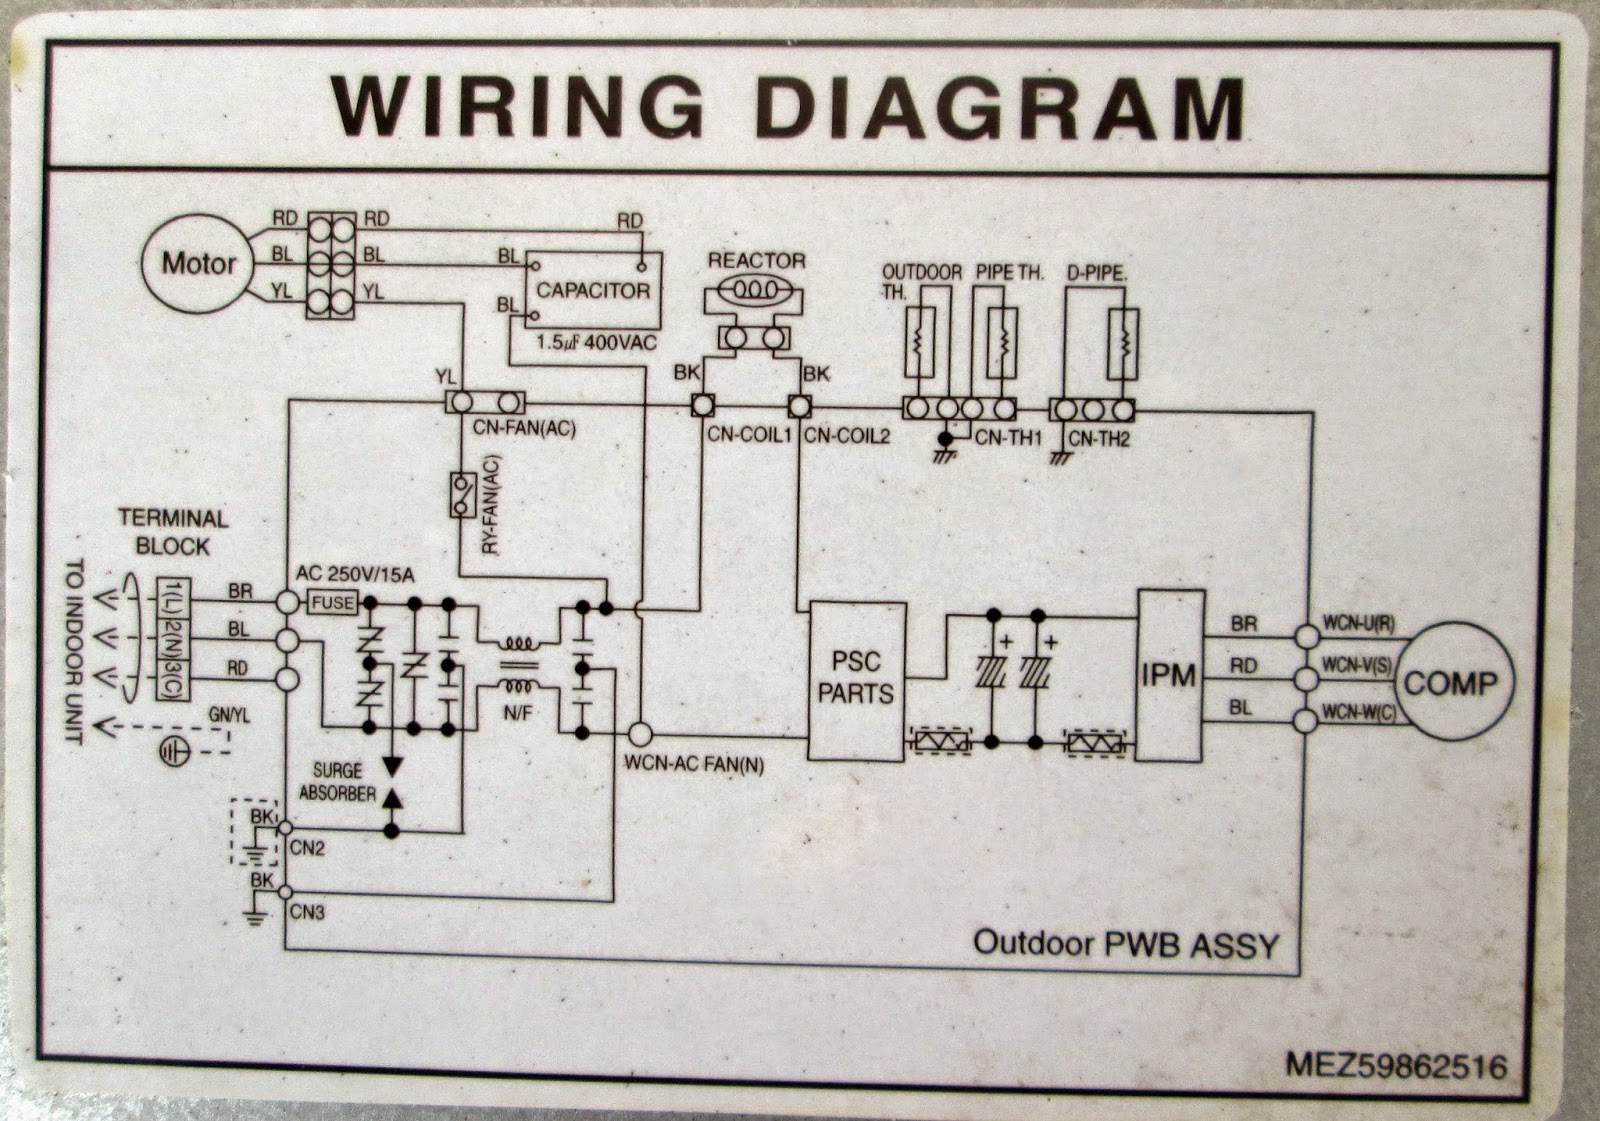 small resolution of wiring diagram of split ac download wiring diagram wiring diagram of split ac download